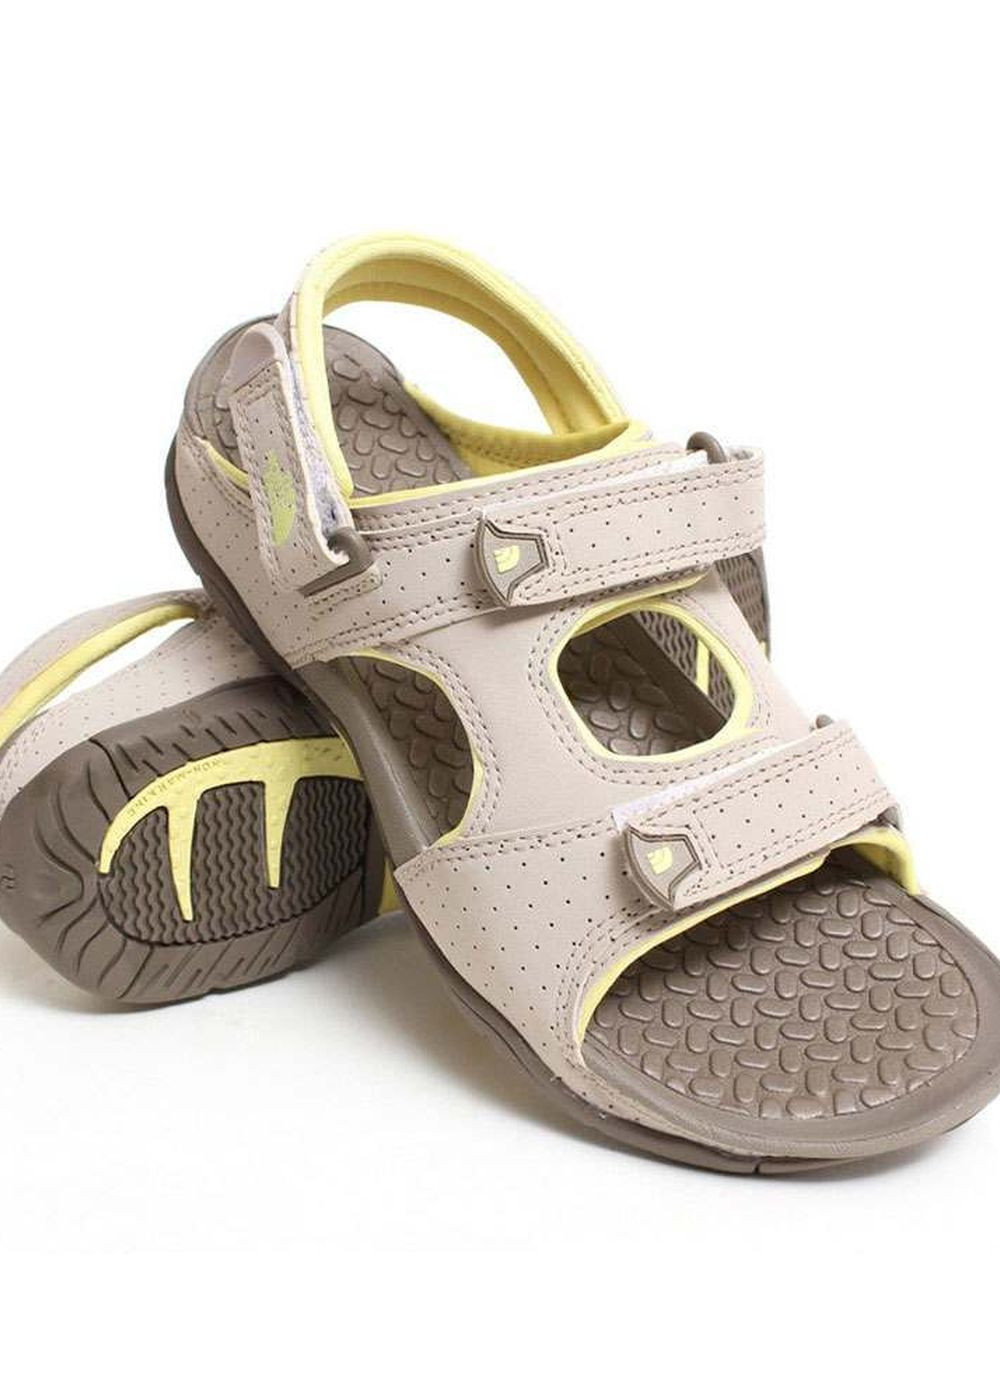 THE NORTH FACE WOMEN S EL RIO II SANDALS Ivory